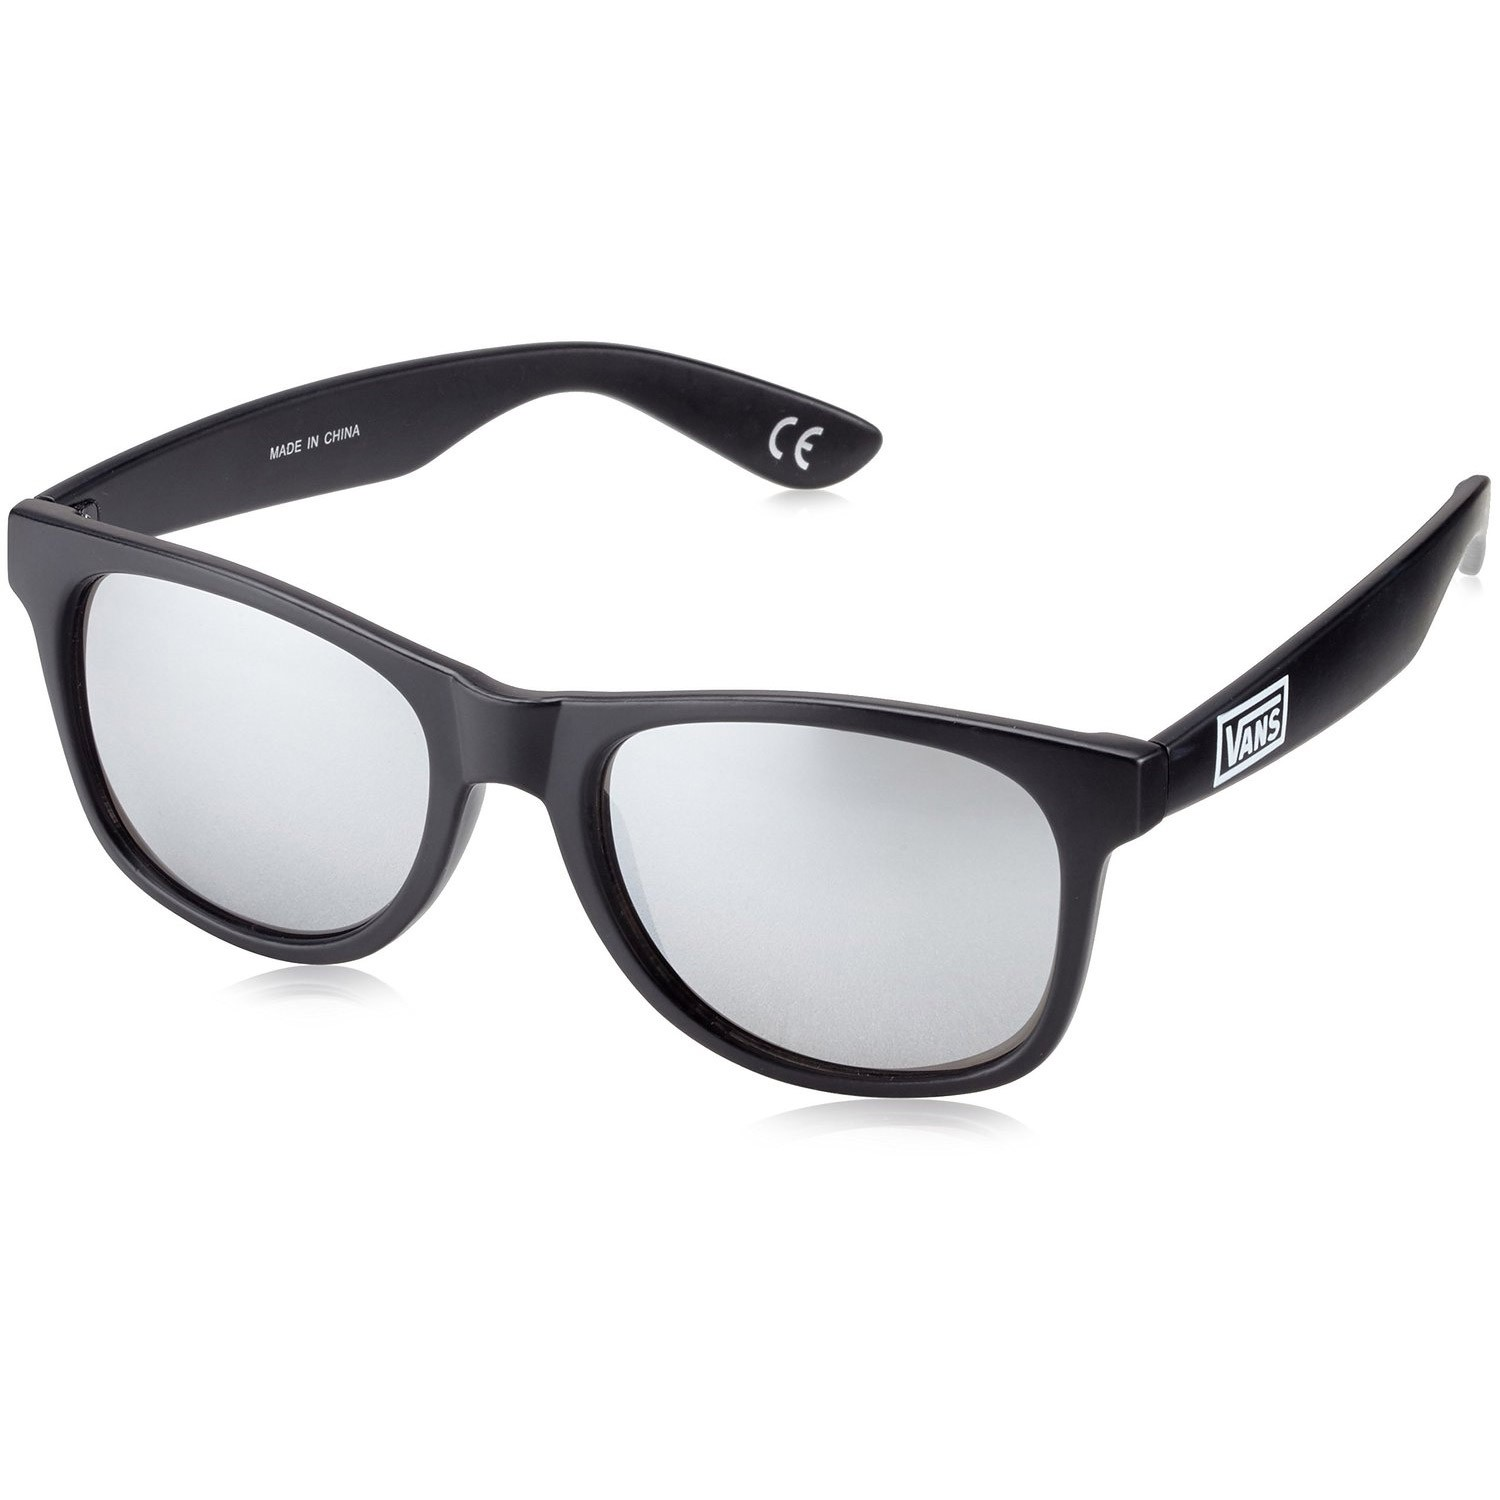 Shades Sunglasses  oli 4 shades sunglasses matte black silver mirror